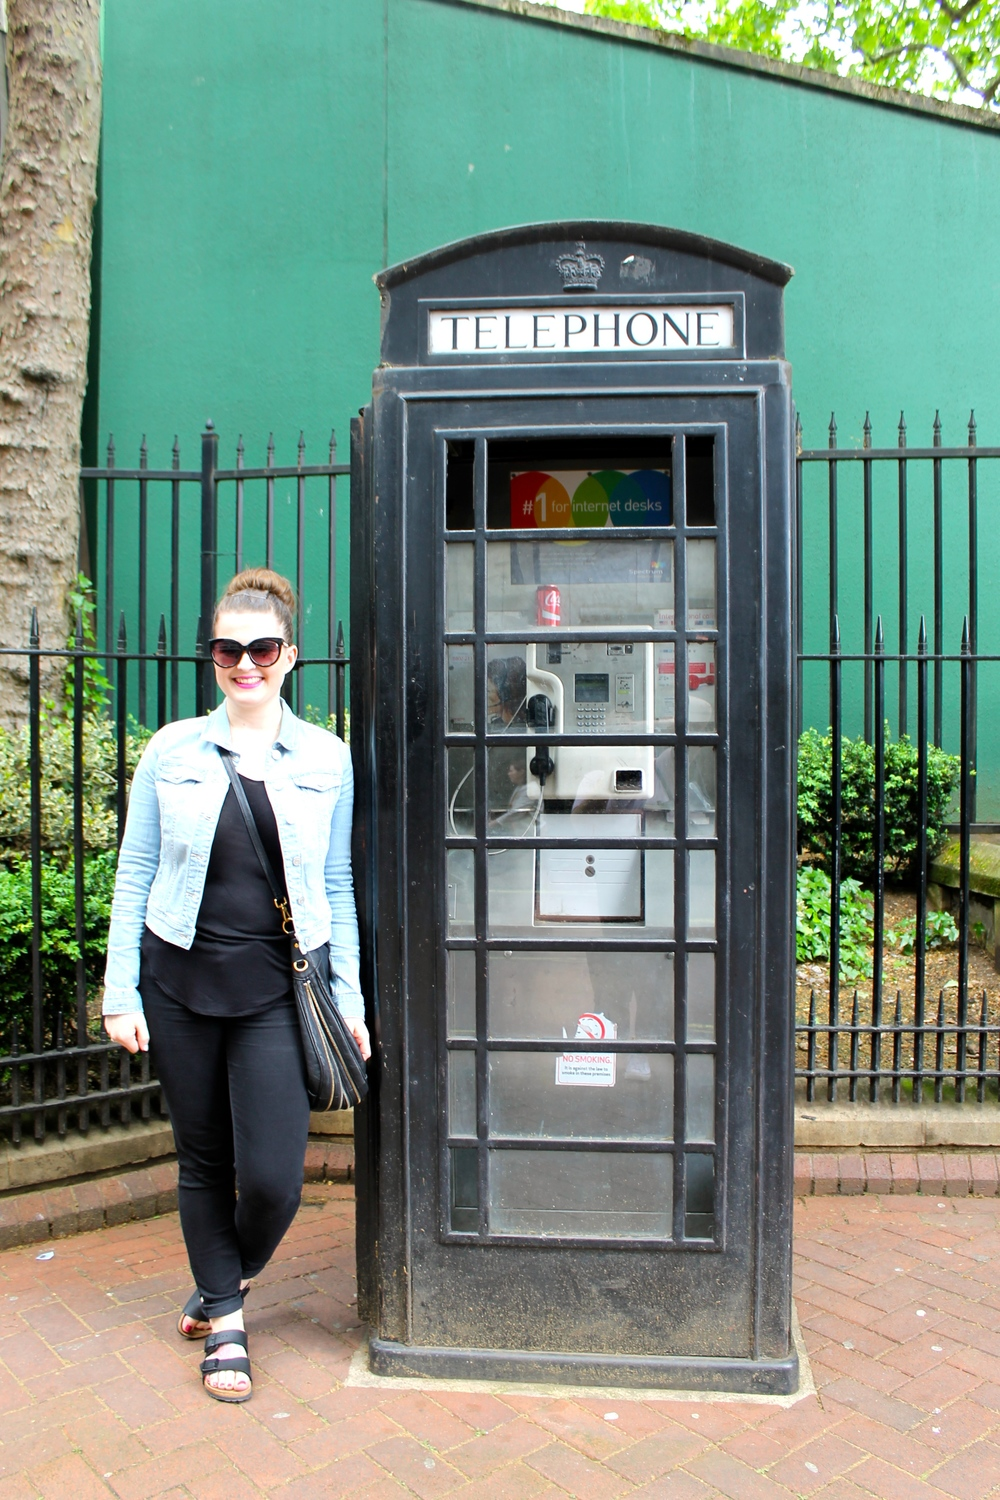 I had to get a photo with a telephone booth! I secretly liked that it was black. This was around Victoria Embankment Gardens.